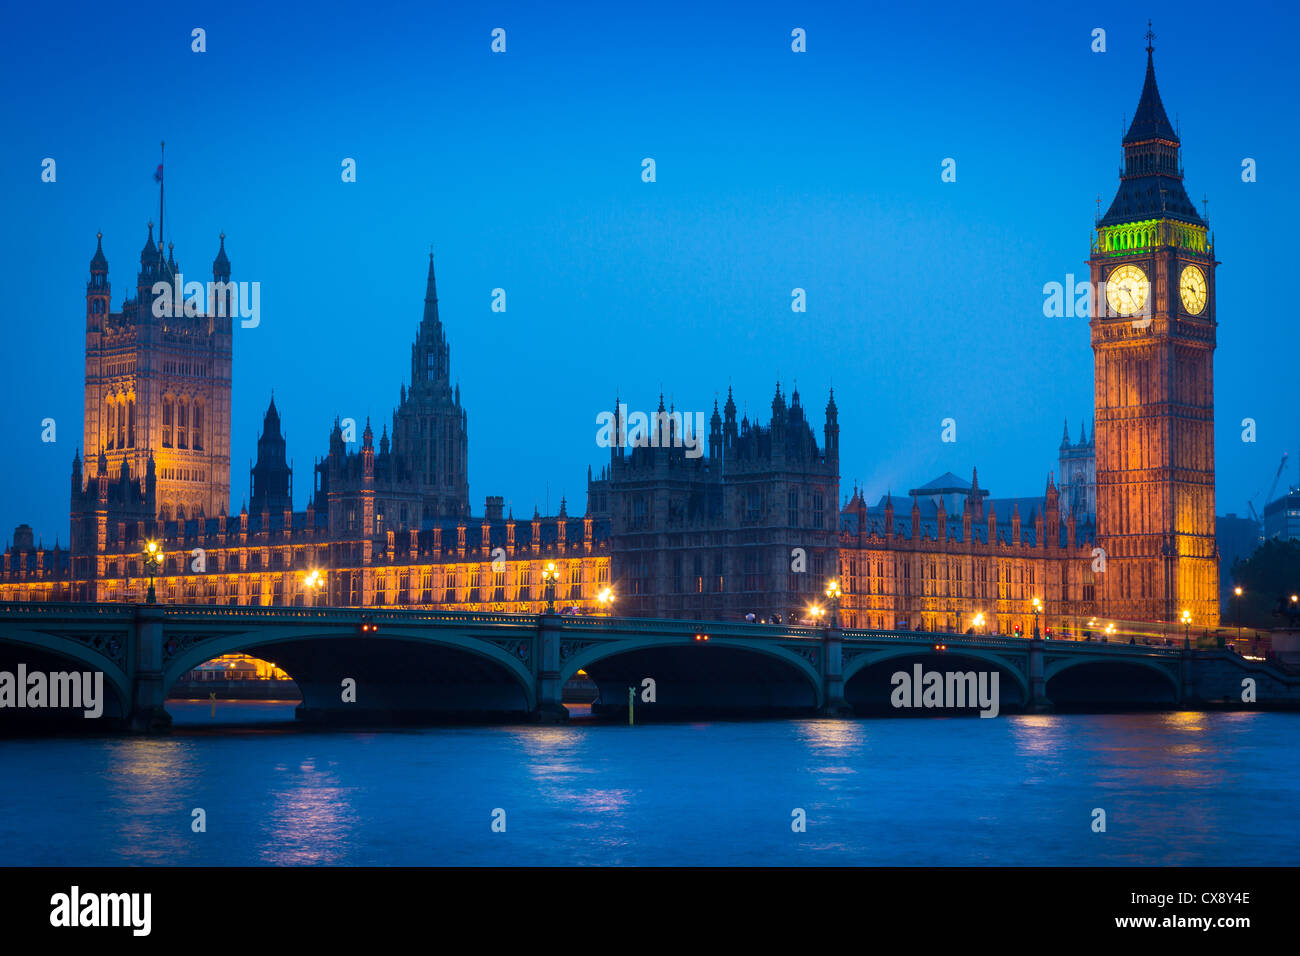 Westminster Bridge at night with Big Ben and the Houses of Parliament on the other side of the Thames - Stock Image